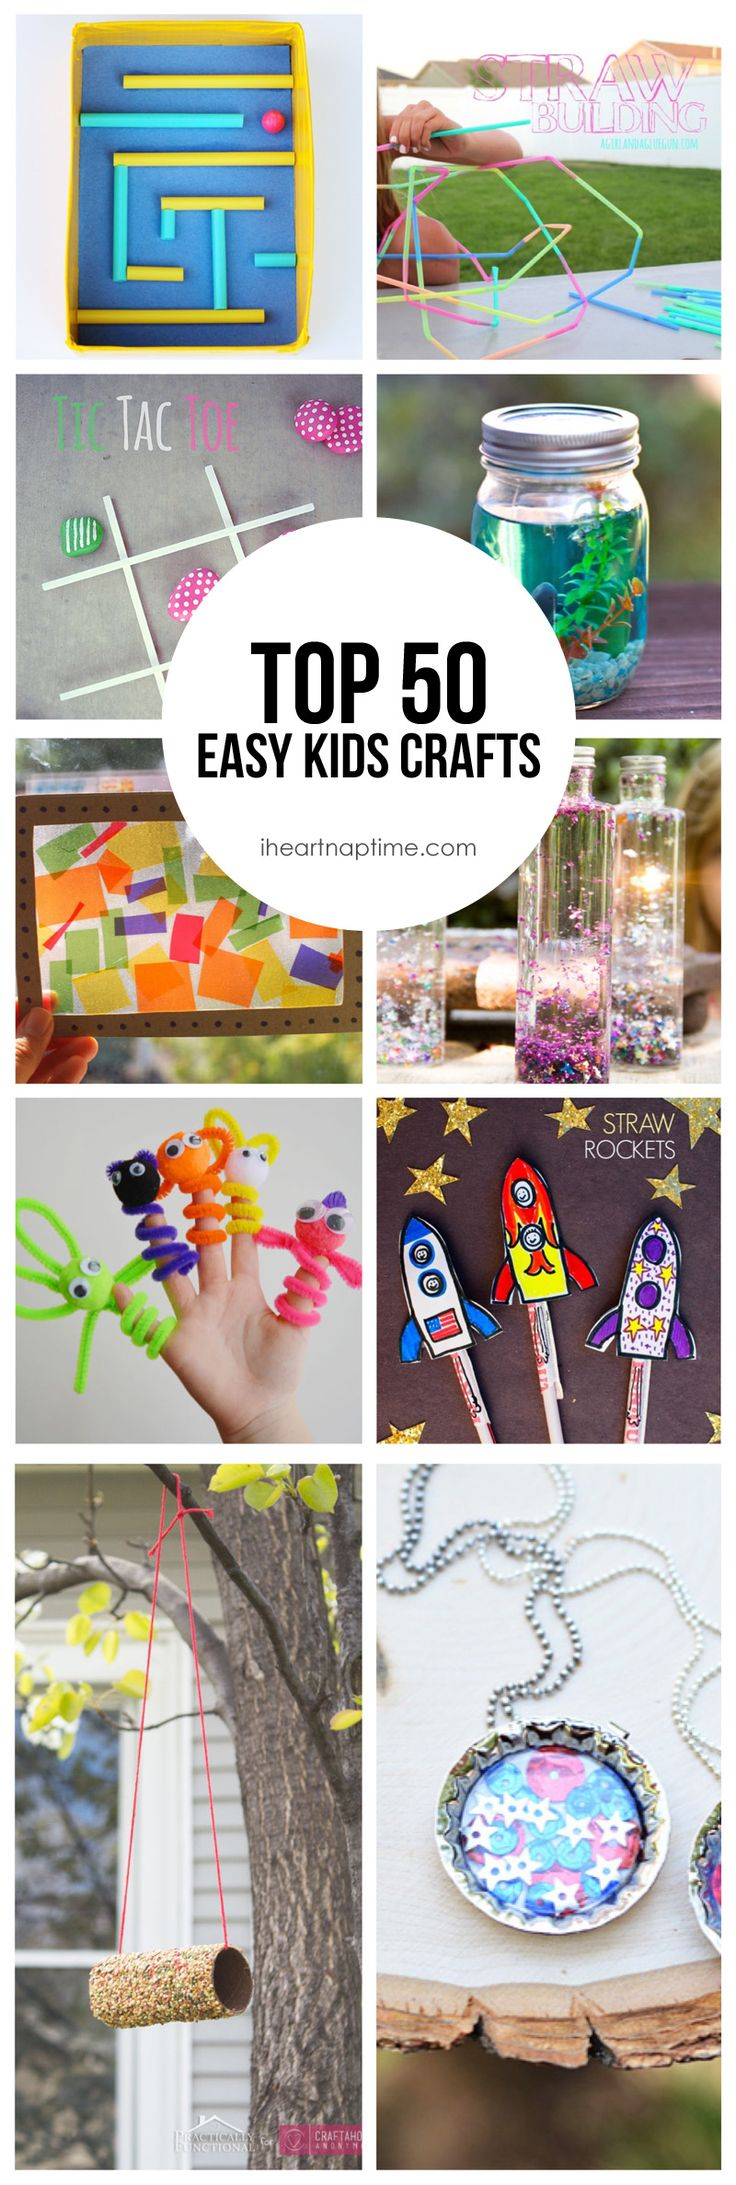 Top 50 Easy Kids Crafts